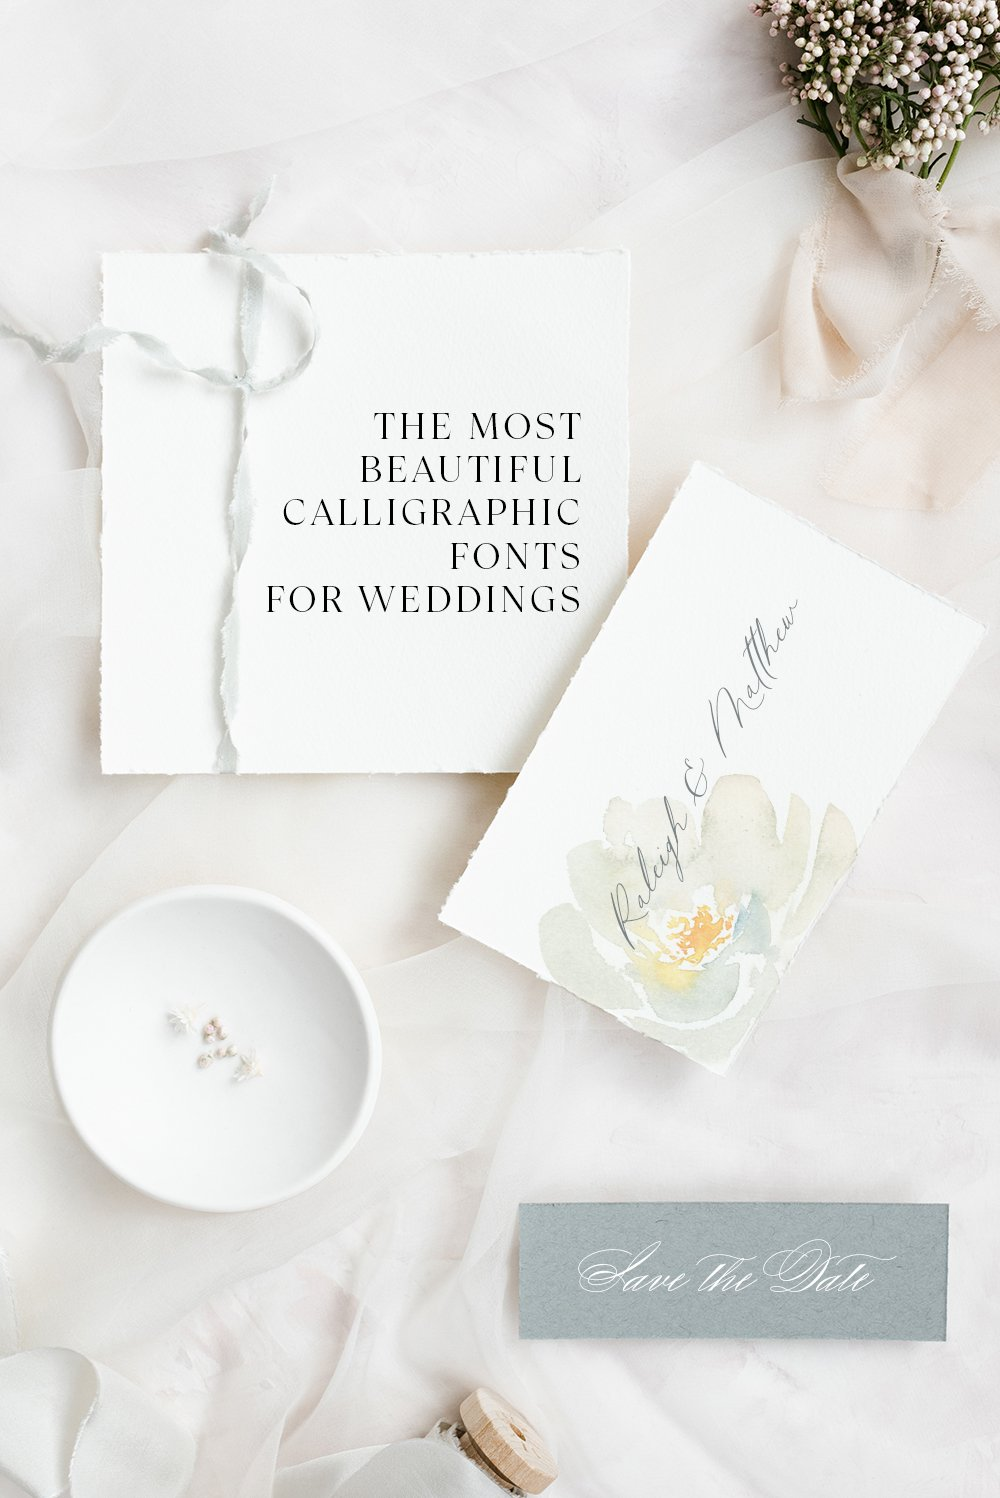 the most beautiful calligraphic typefaces for weddings by fgd